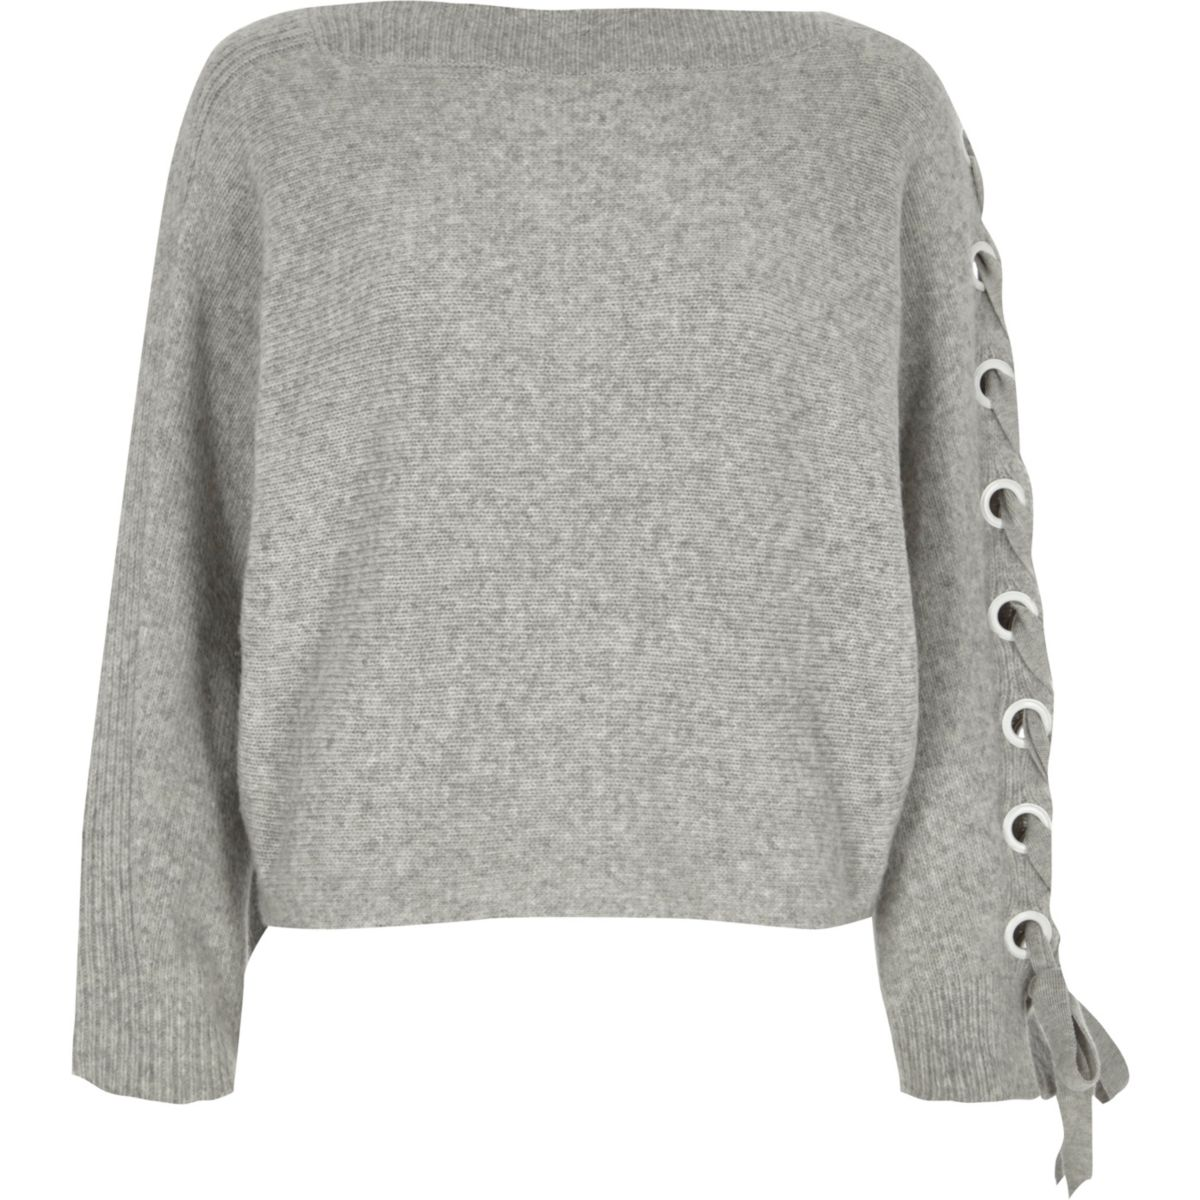 Grey eyelet lace-up sleeve sweater